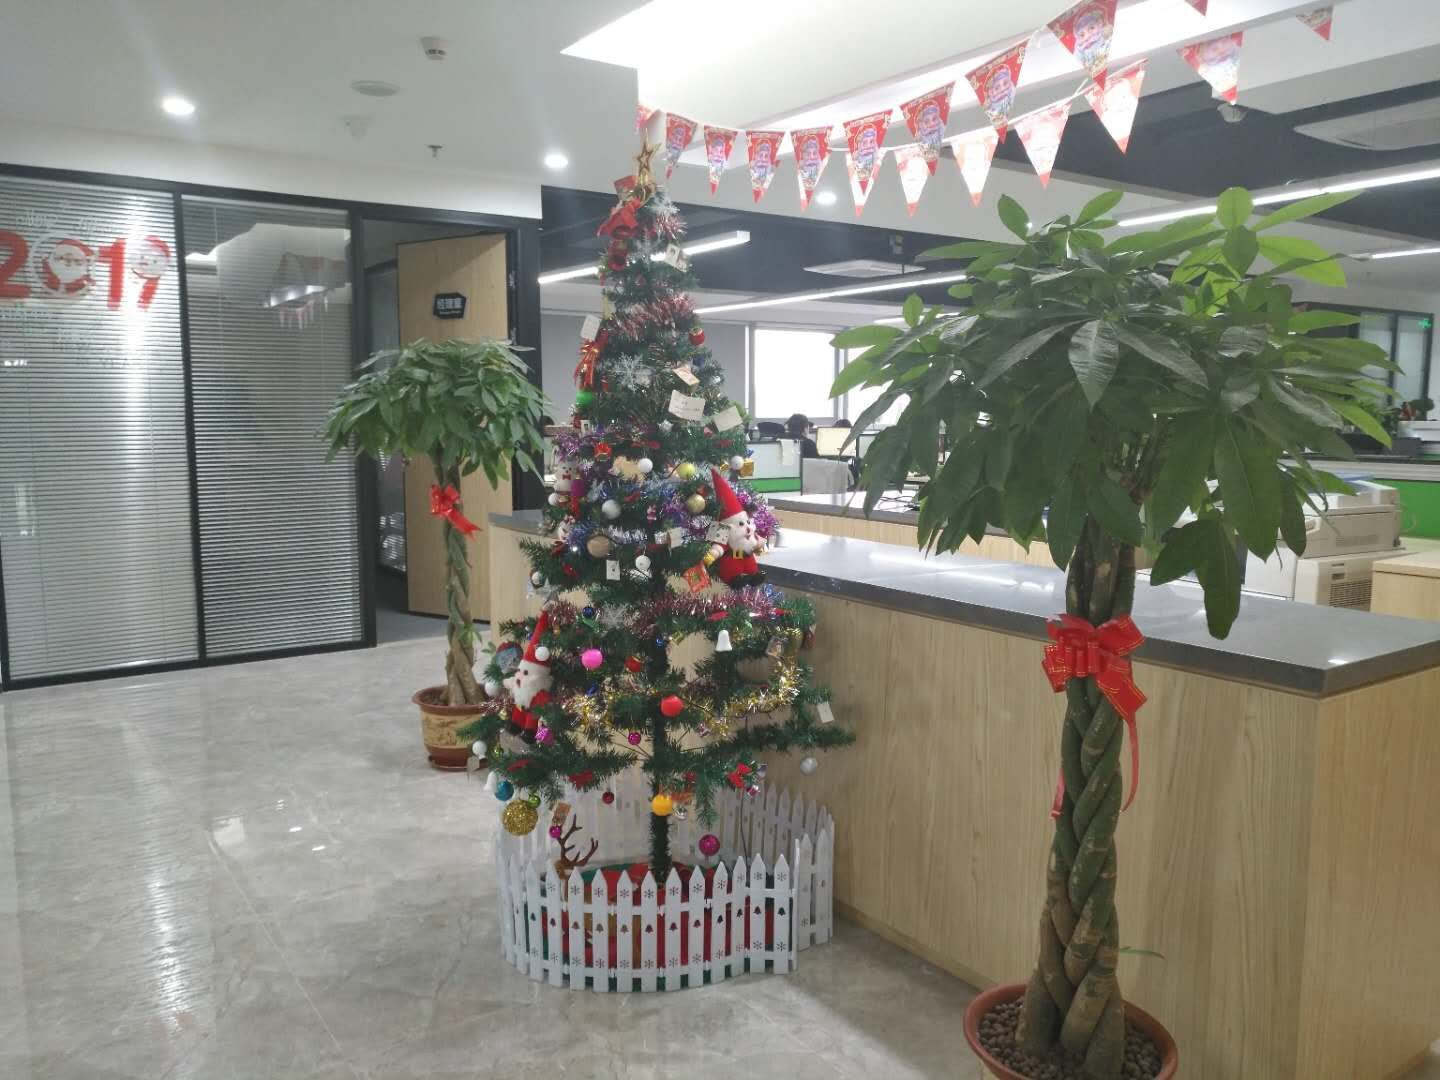 Sunny Group office with Christmas decoration